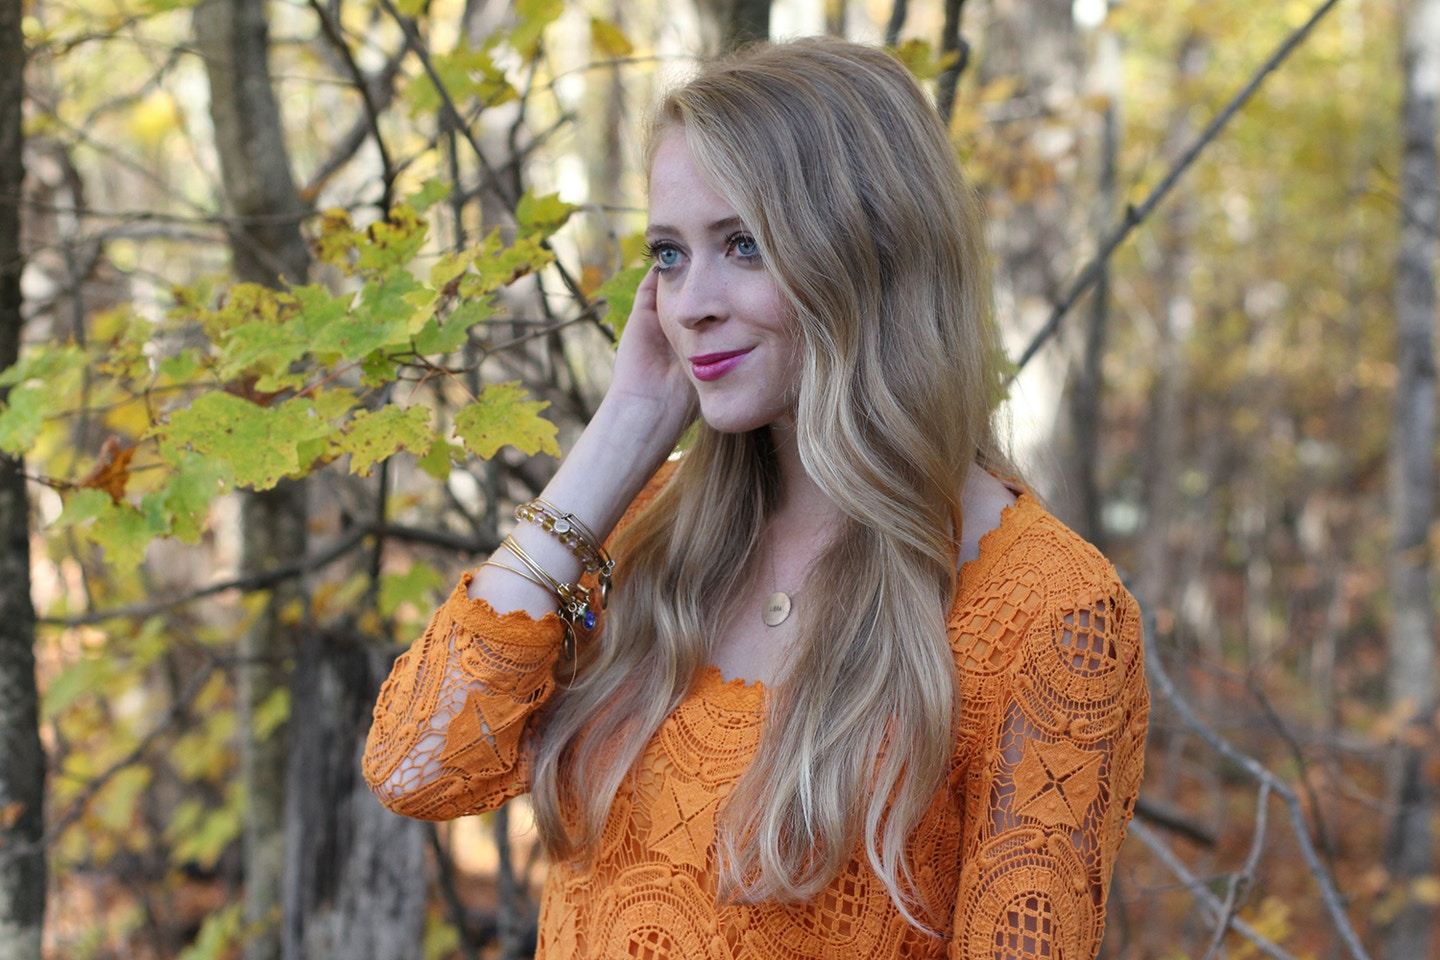 Canadian Thanksgiving: Orange lace dress